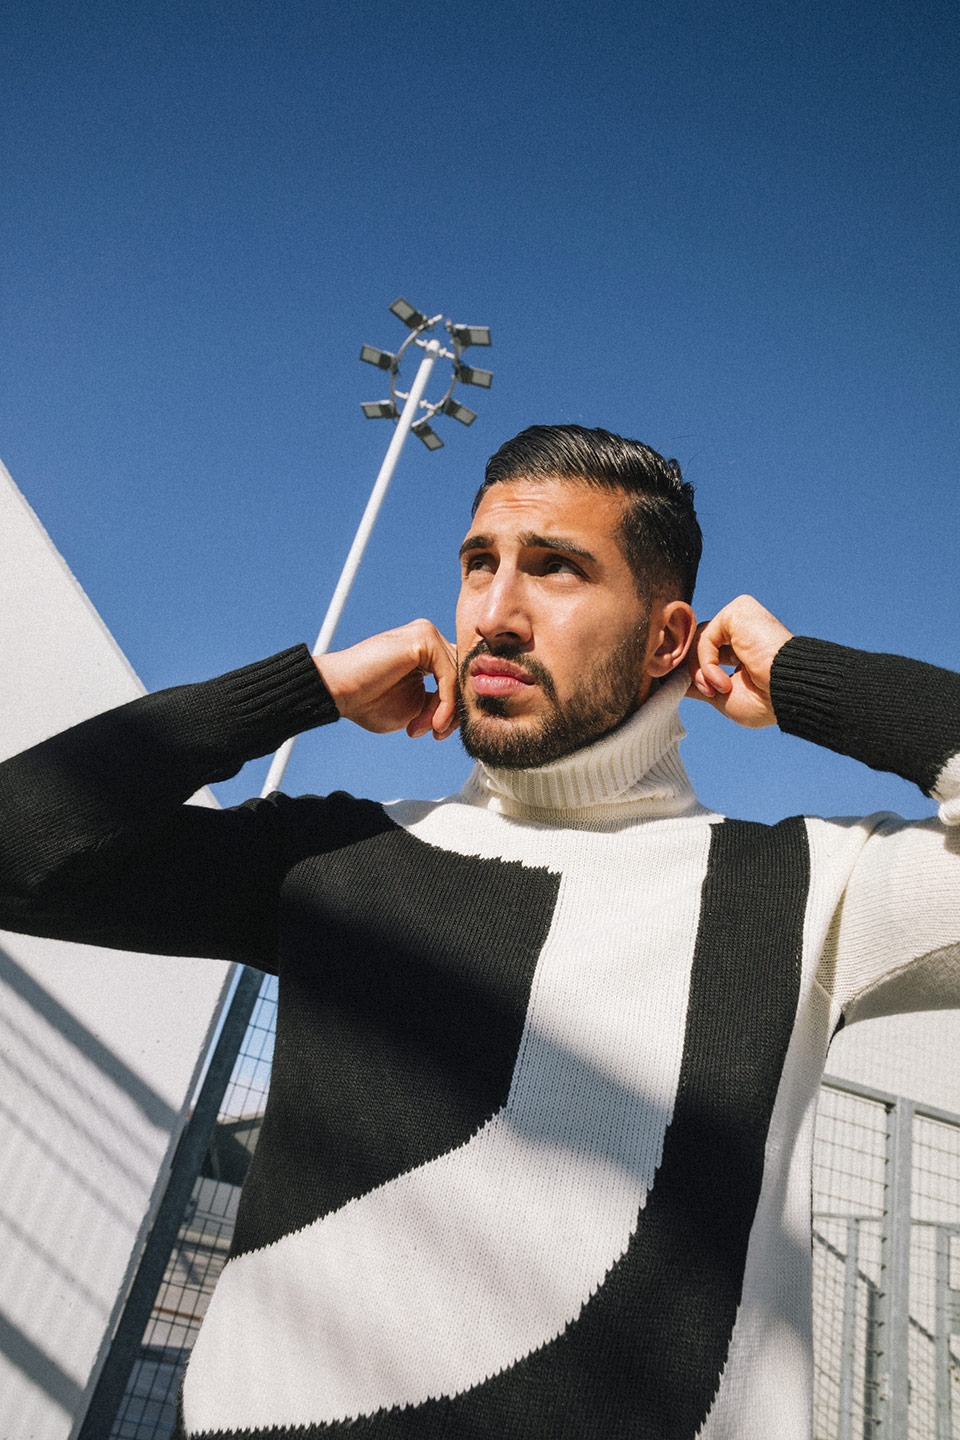 041c3da73e9b Italian Football Giant Juventus Launches First-Ever Streetwear Collection